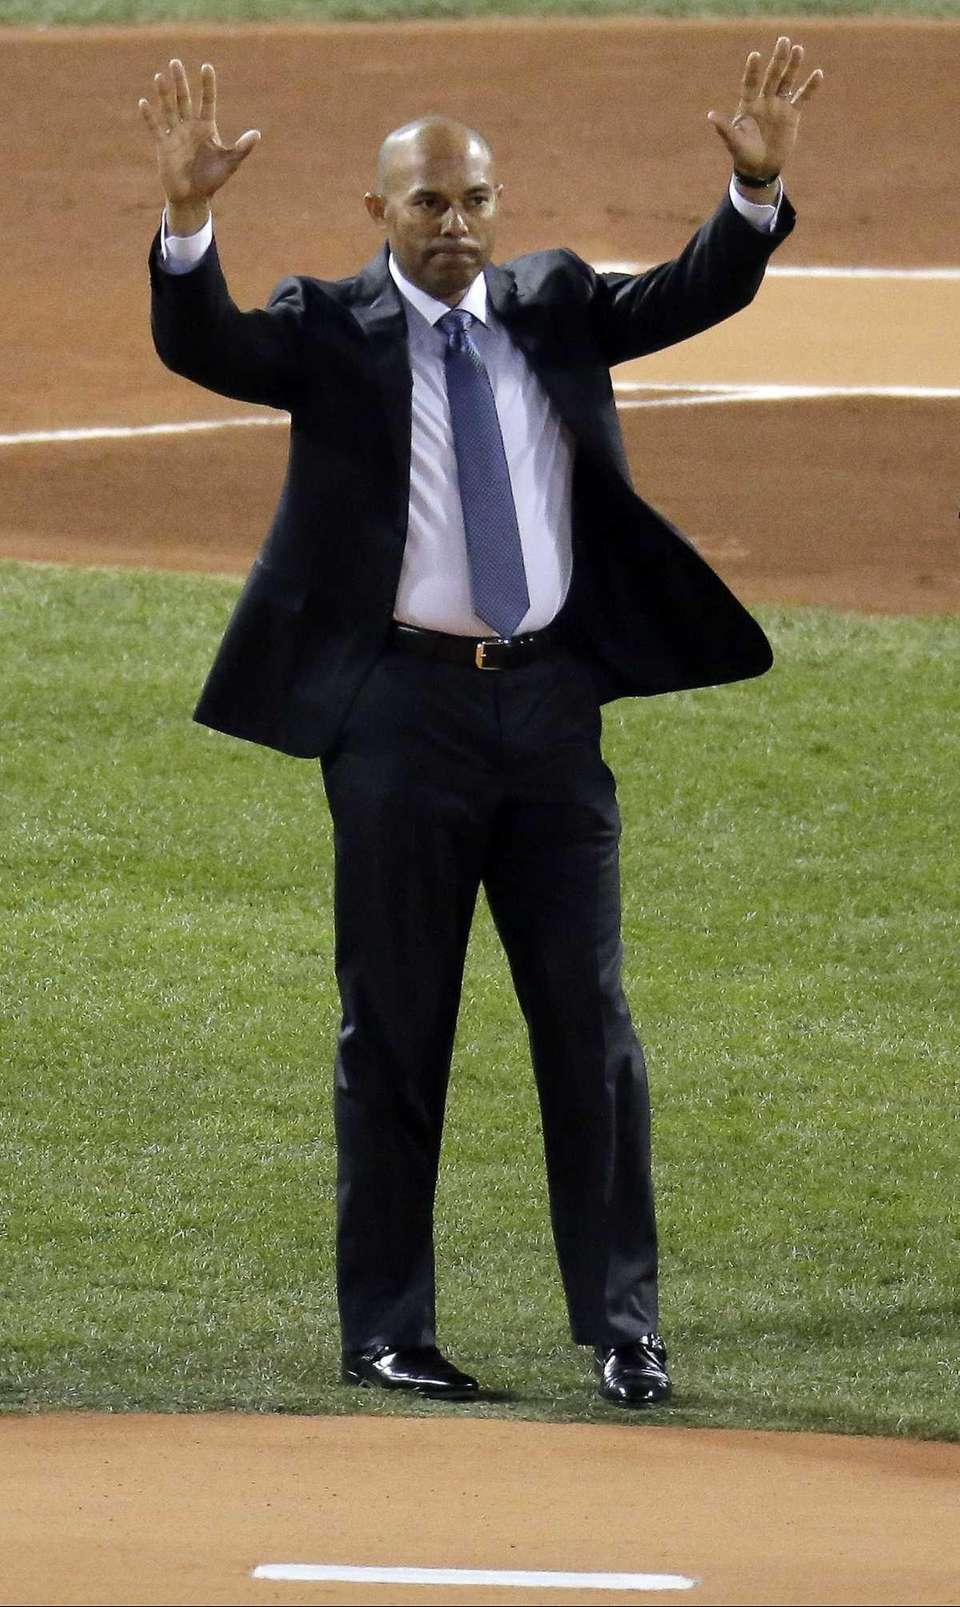 Former Yankees pitcher Mariano Rivera acknowledges the crowd